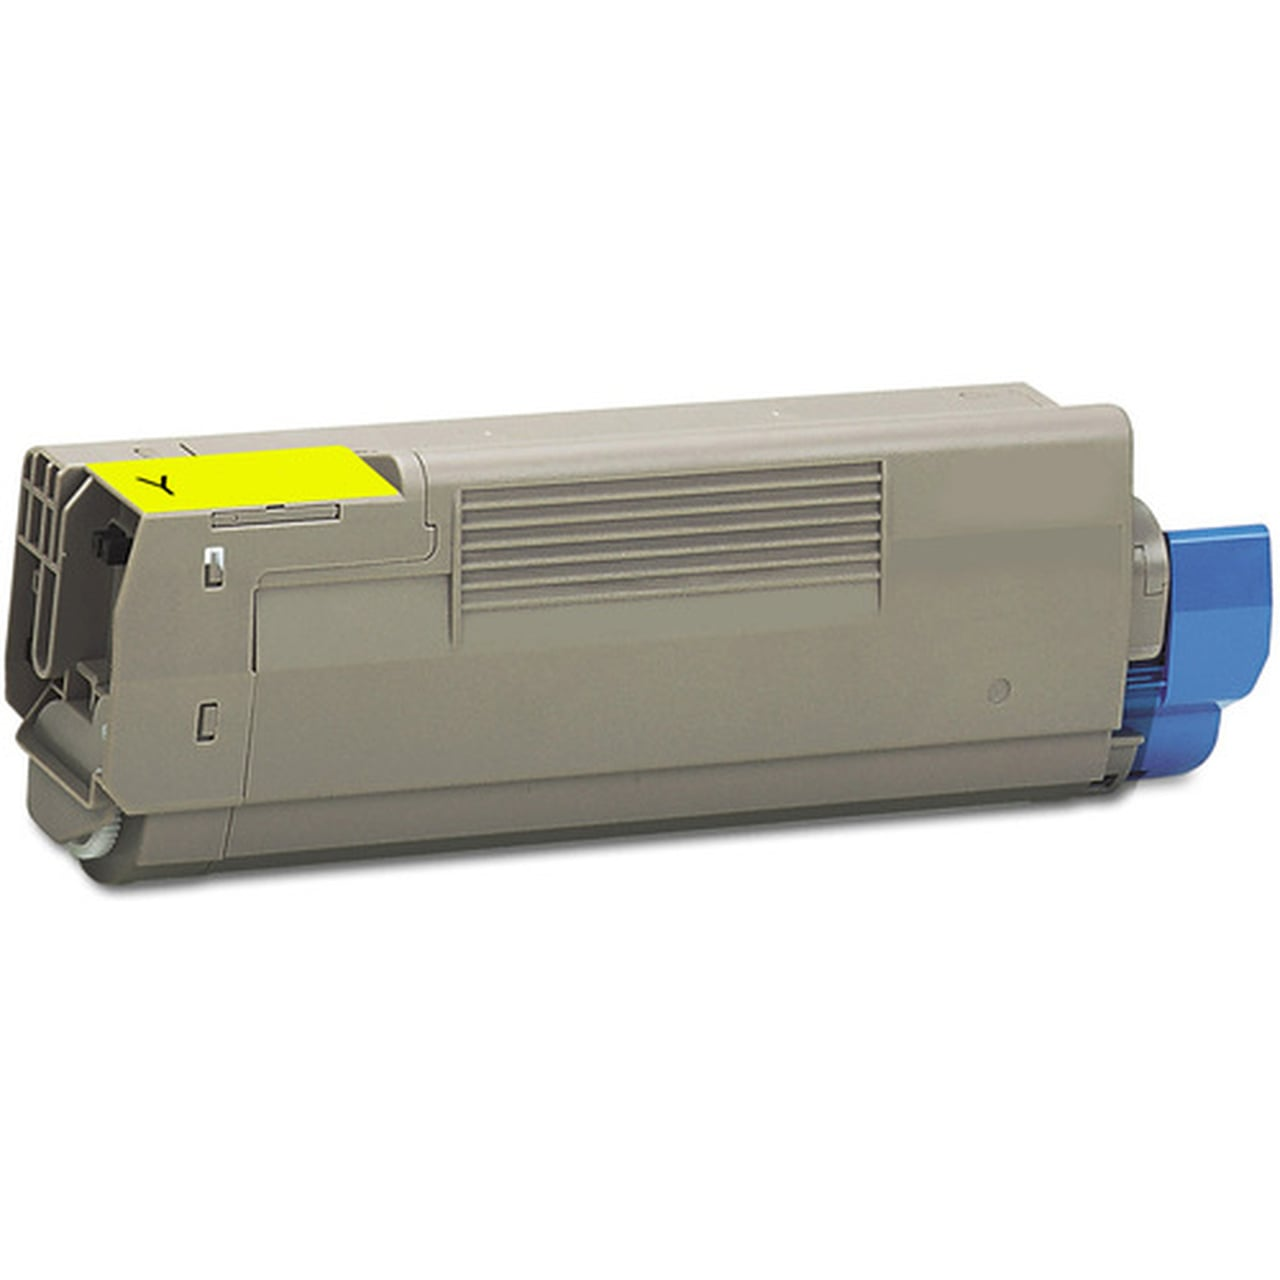 44318601 Toner Cartridge - Okidata Remanufactured (Yellow)